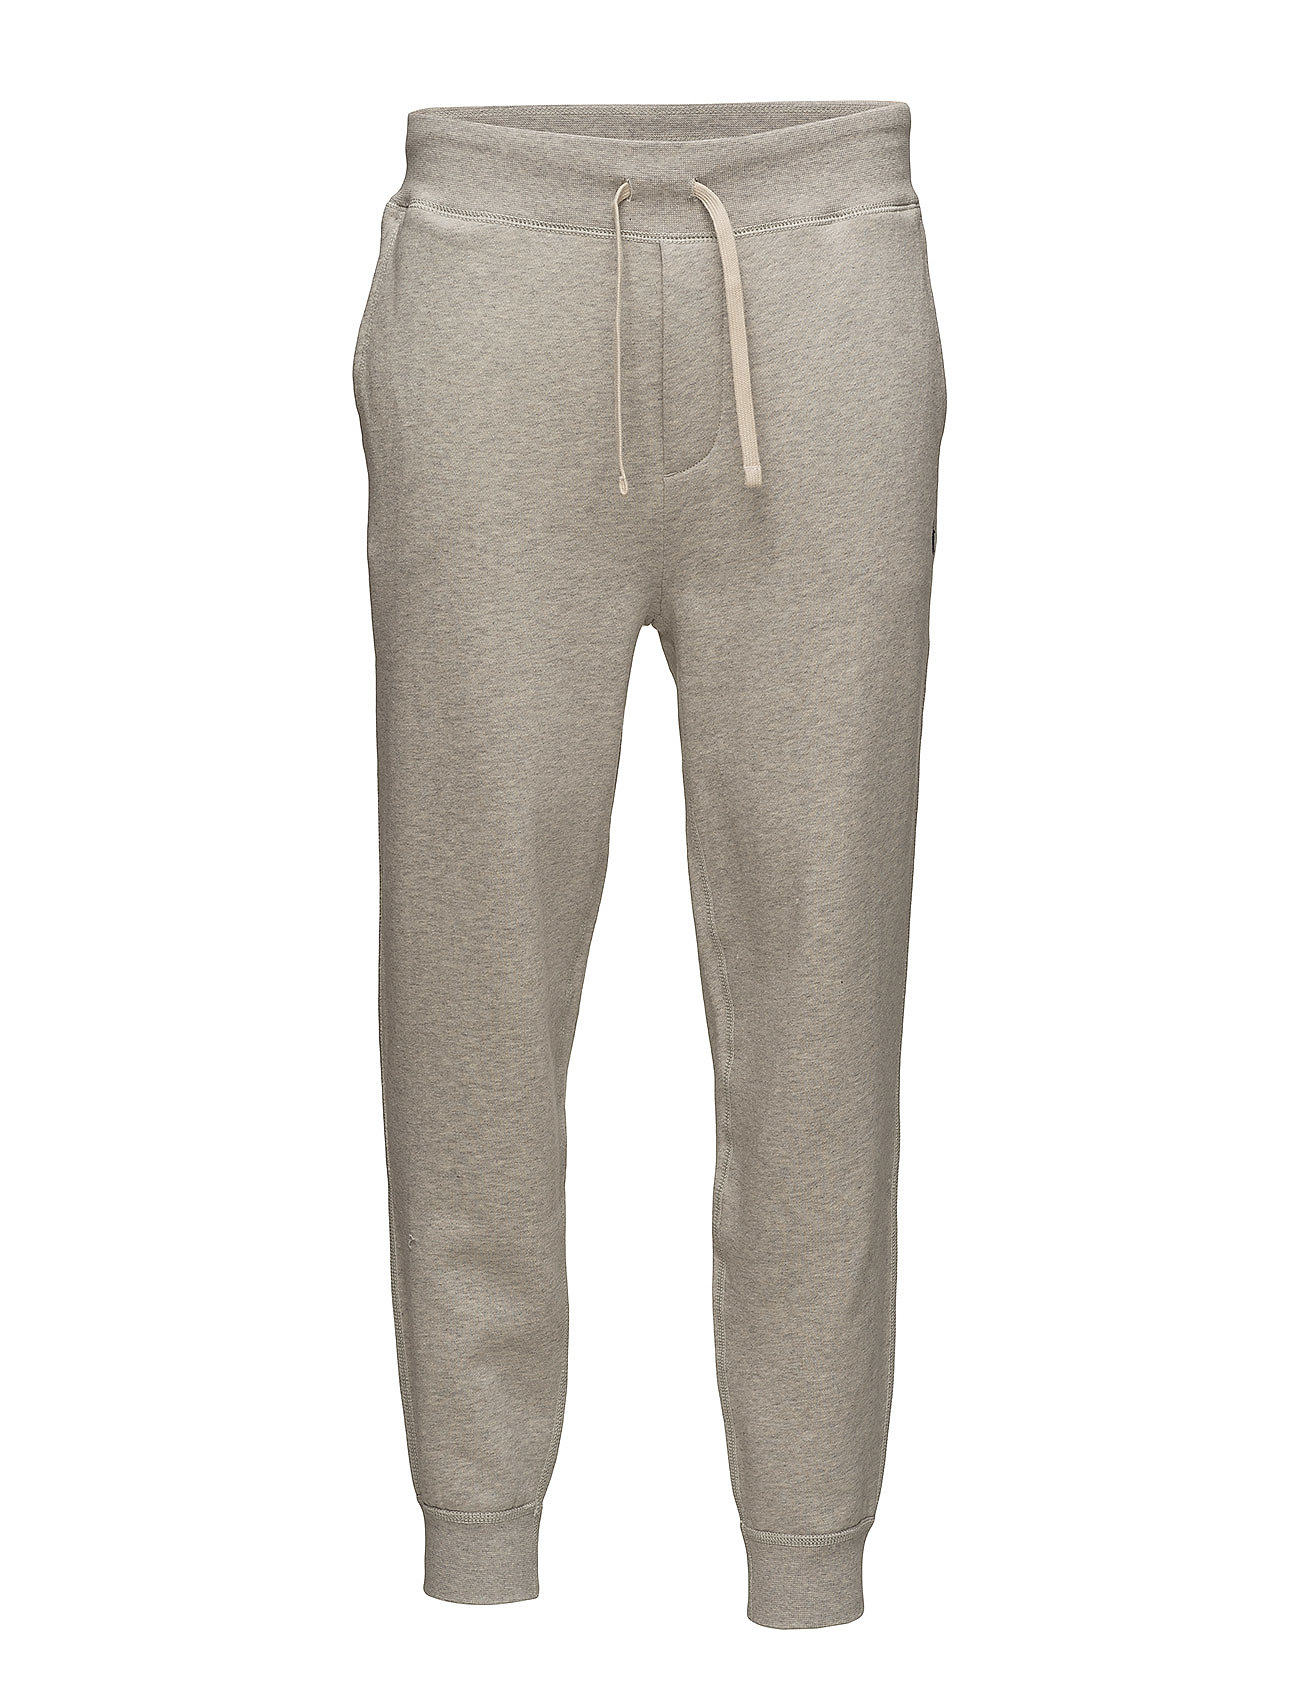 Polo Ralph Lauren Cotton-Blend-Fleece Jogger